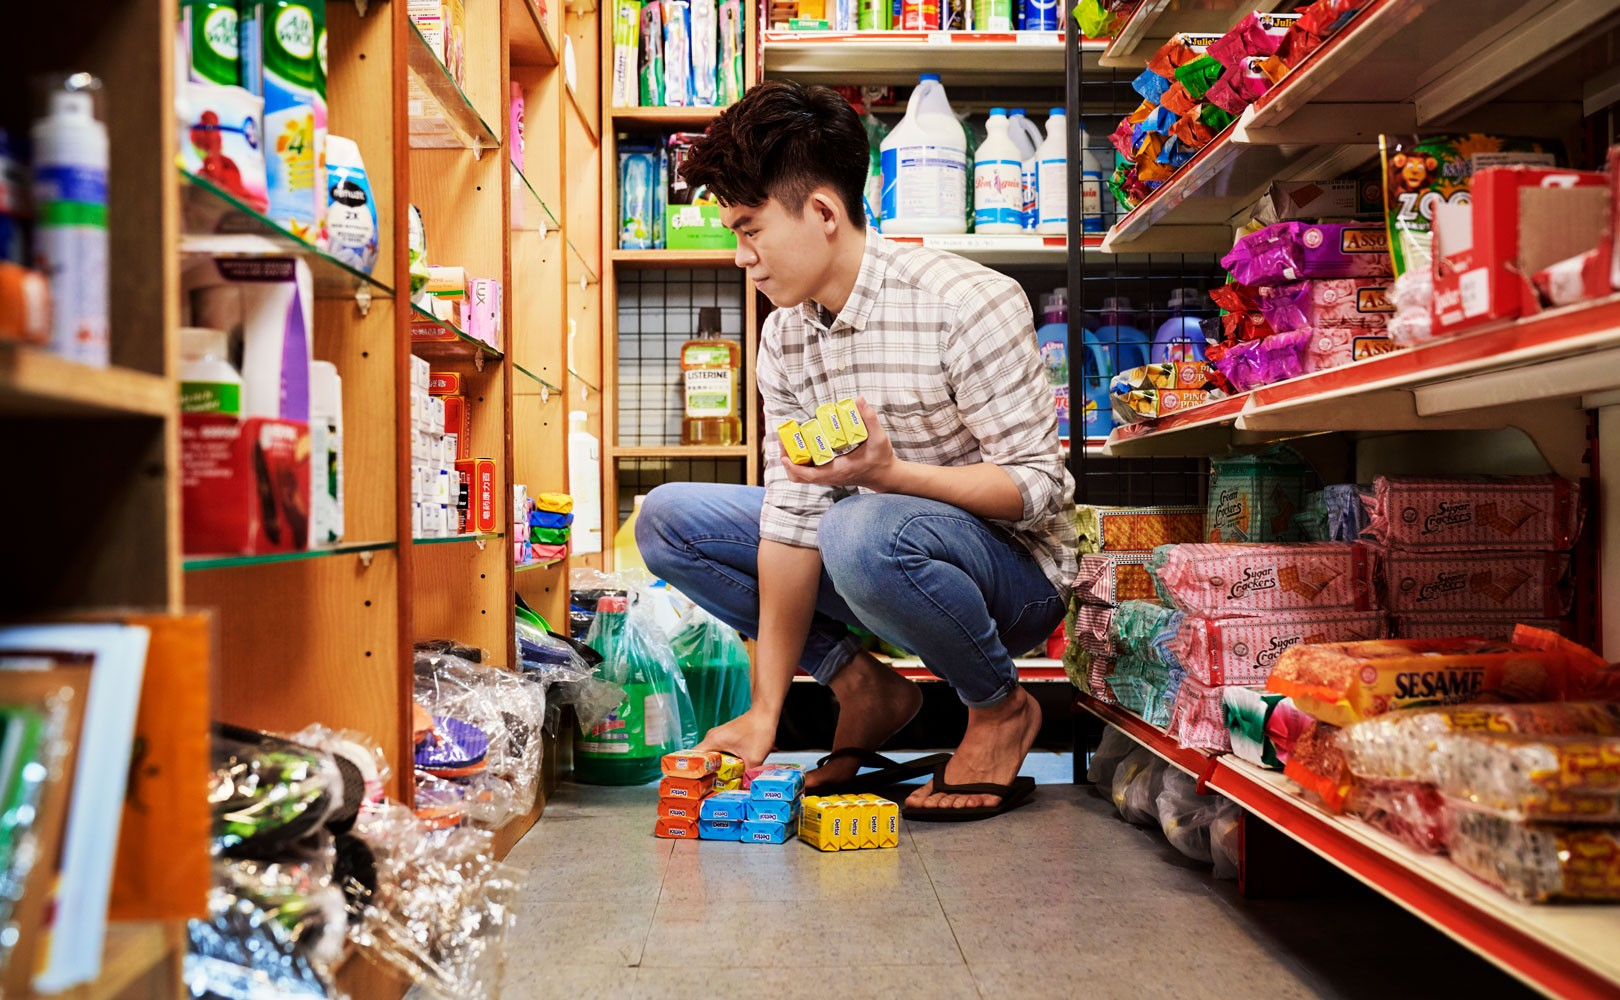 Photo of man stocking shelves in grocery store